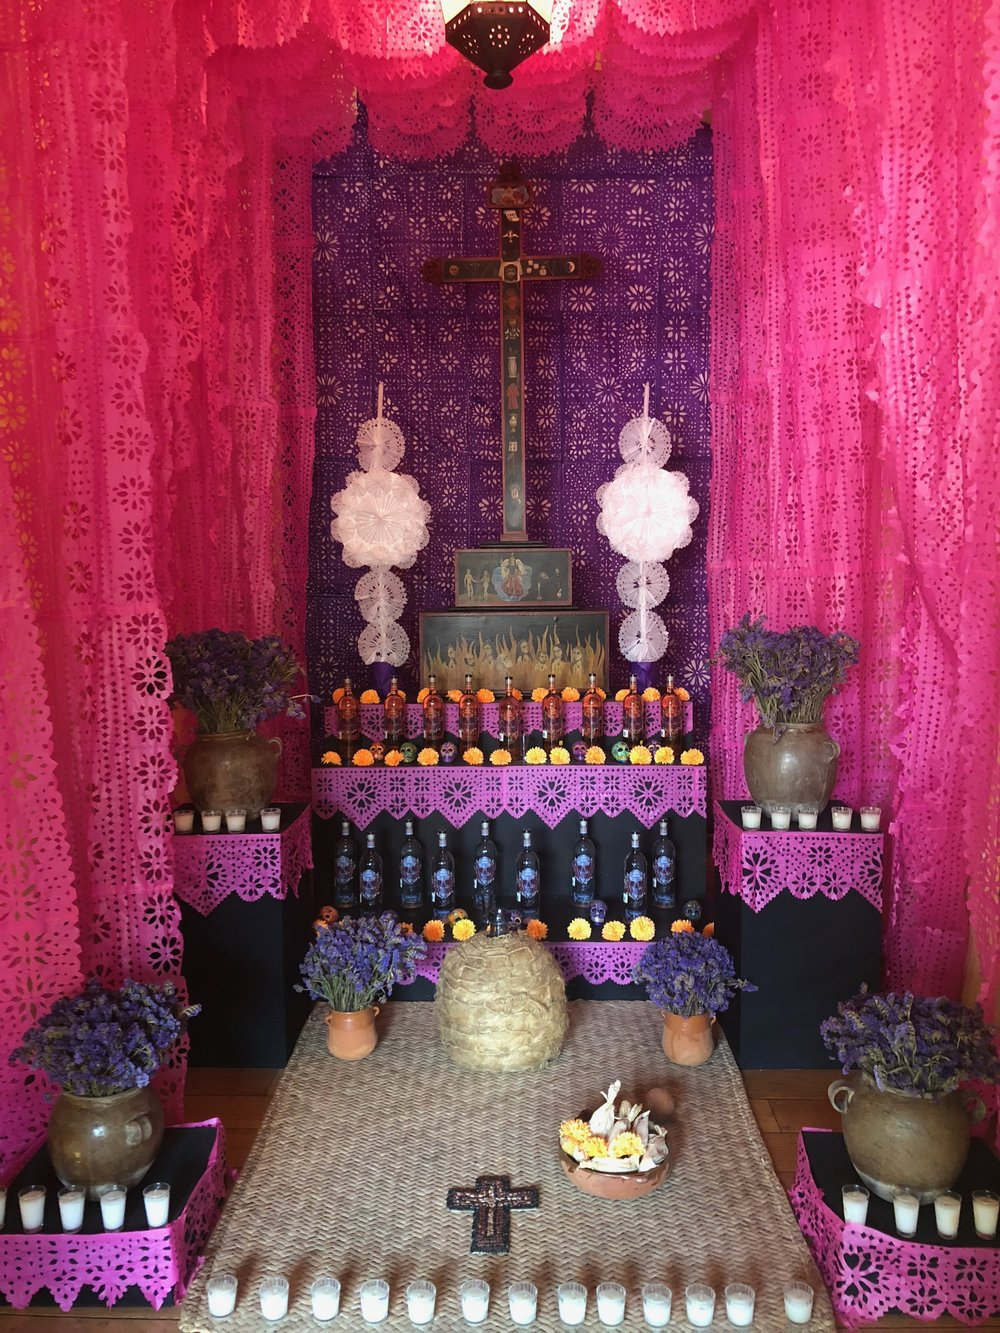 A tequila altar at Jose Cuervo.